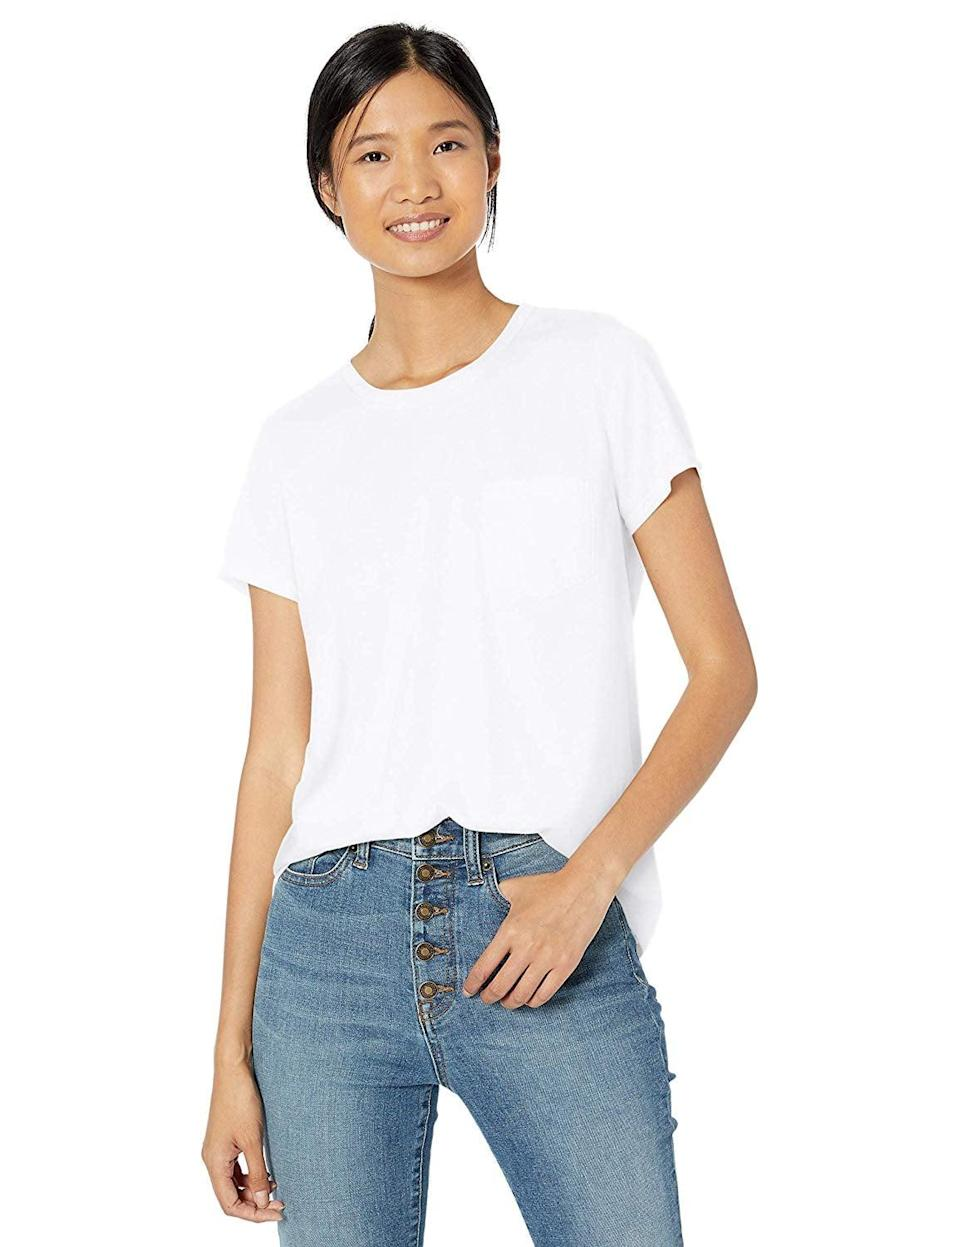 """<p>Look no further than this <a href=""""https://www.popsugar.com/buy/Goodthreads-Washed-Jersey-Cotton-Pocket-Crewneck-T-Shirt-537498?p_name=Goodthreads%20Washed%20Jersey%20Cotton%20Pocket%20Crewneck%20T-Shirt&retailer=amazon.com&pid=537498&price=15&evar1=fab%3Aus&evar9=47252524&evar98=https%3A%2F%2Fwww.popsugar.com%2Ffashion%2Fphoto-gallery%2F47252524%2Fimage%2F47252557%2FGoodthreads-Washed-Jersey-Cotton-Pocket-Crewneck-T-Shirt&list1=shopping%2Camazon%2Cspring%20fashion%2C50%20under%20%2450&prop13=mobile&pdata=1"""" class=""""link rapid-noclick-resp"""" rel=""""nofollow noopener"""" target=""""_blank"""" data-ylk=""""slk:Goodthreads Washed Jersey Cotton Pocket Crewneck T-Shirt"""">Goodthreads Washed Jersey Cotton Pocket Crewneck T-Shirt</a> ($15) for a crisp white tee. It's not see-through (that's hard to find!), and the fit is loose but still flattering.</p>"""